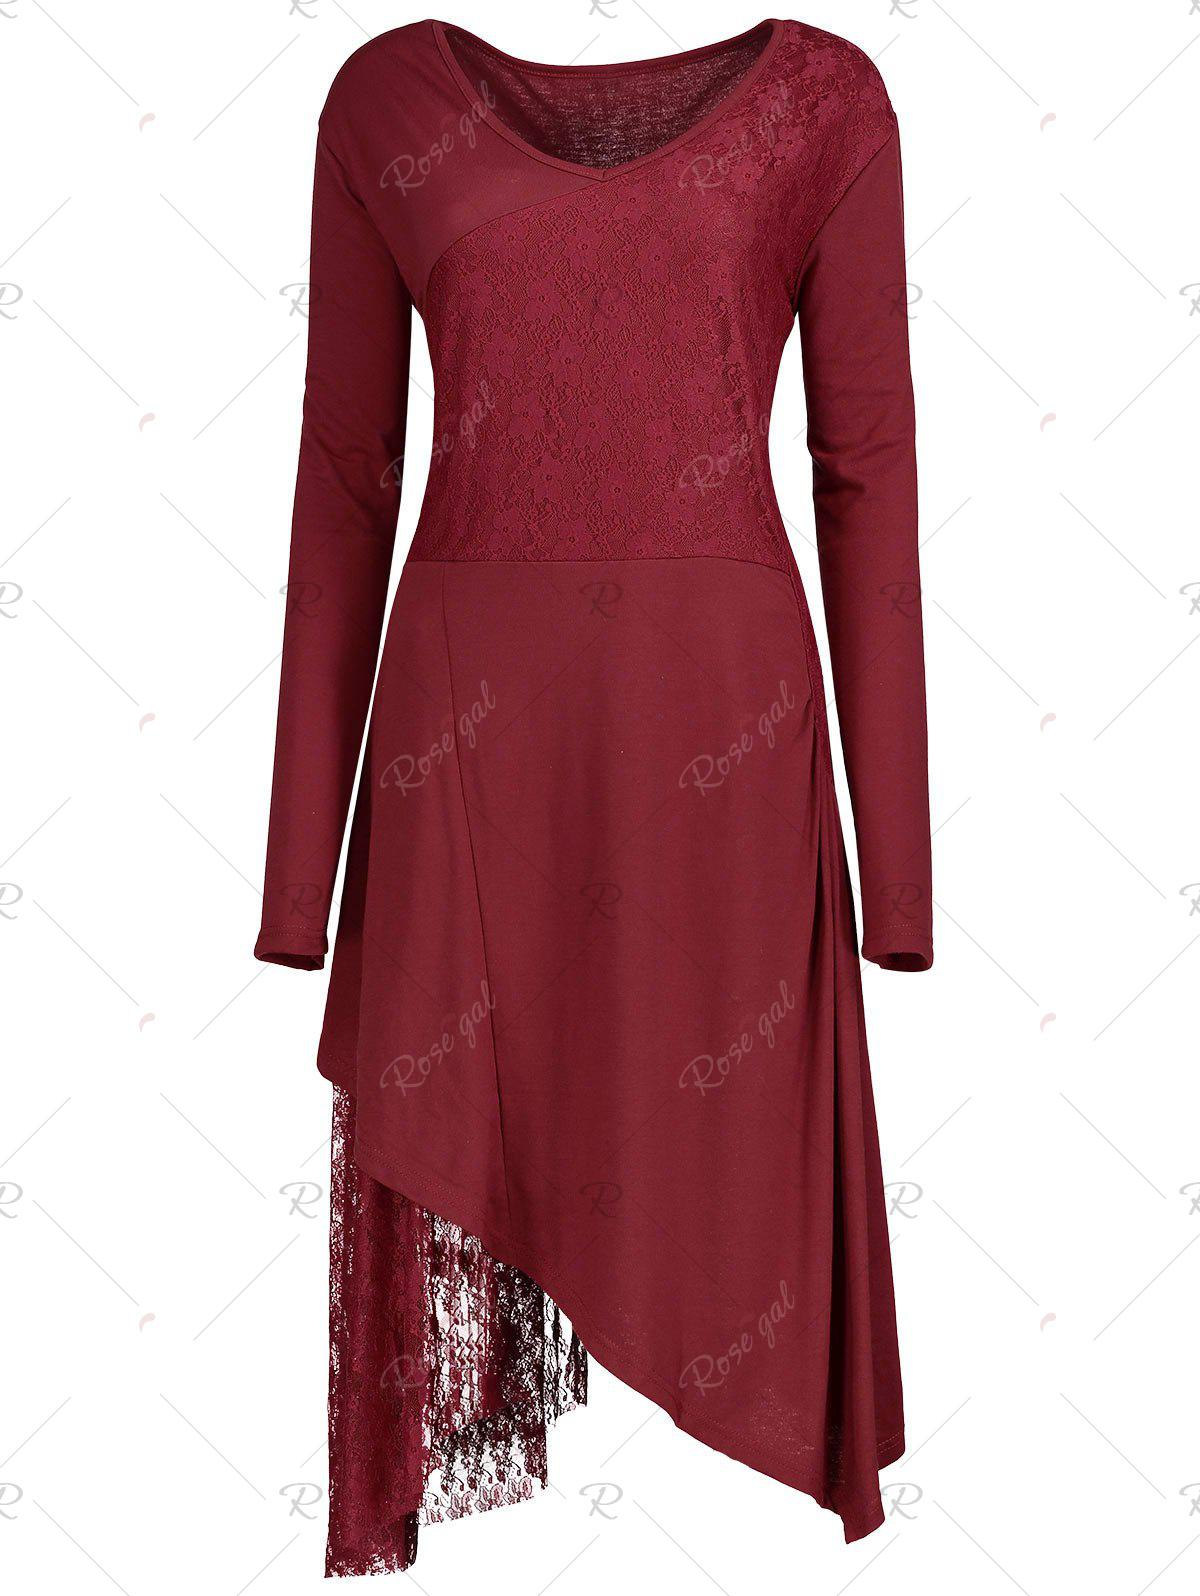 Christmas Party Plus Size Lace Trim V-neck DressWOMEN<br><br>Size: 2XL; Color: RED; Style: Cute; Material: Polyester,Spandex; Silhouette: Asymmetrical; Dresses Length: Knee-Length; Neckline: V-Neck; Sleeve Length: Long Sleeves; Embellishment: Lace; Pattern Type: Solid; With Belt: No; Season: Fall,Spring; Weight: 0.4800kg; Package Contents: 1 x Dress;